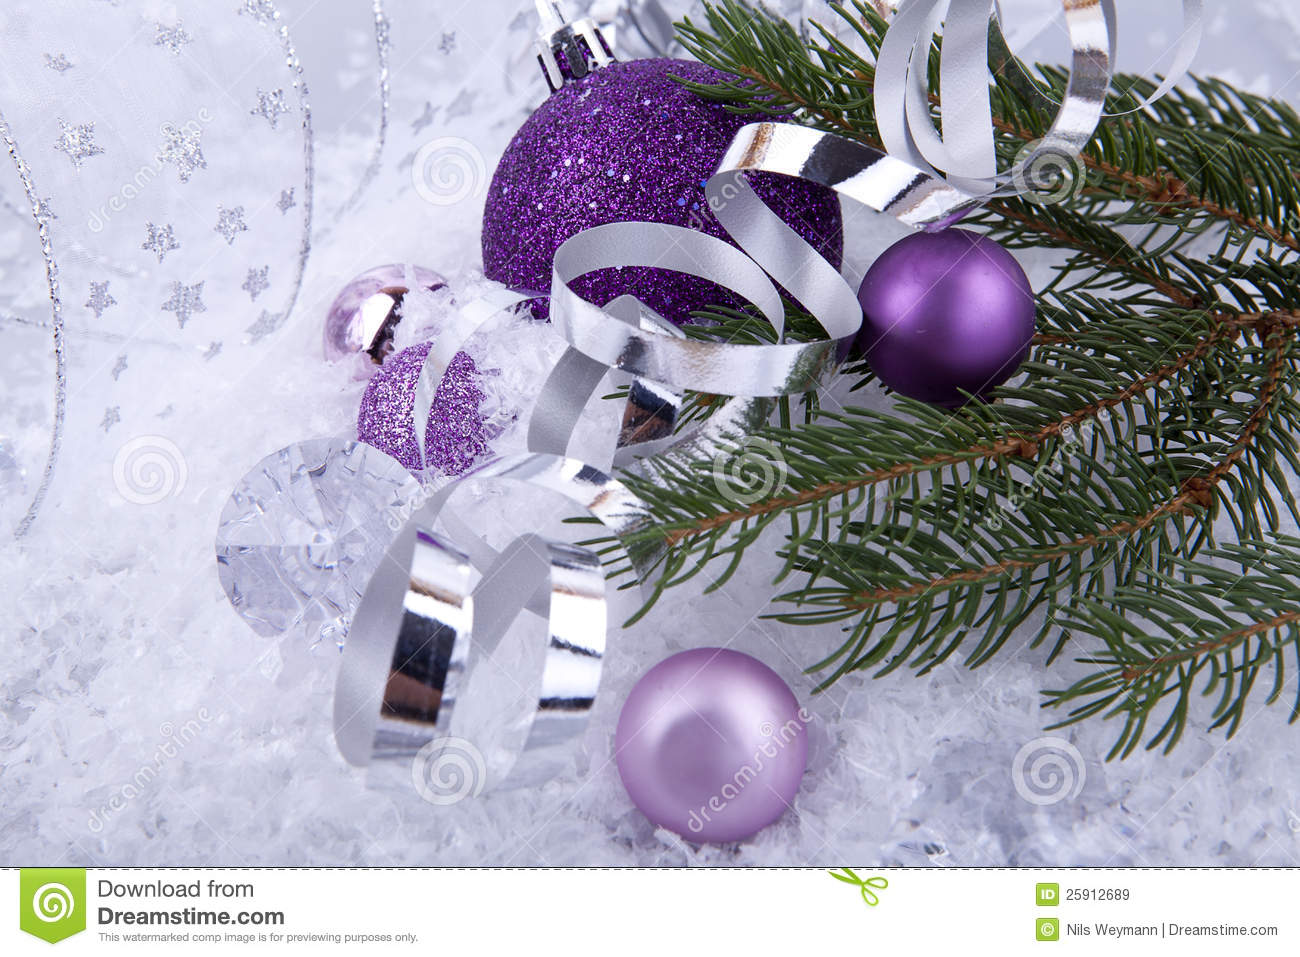 Cool Purple and White Christmas Decorations